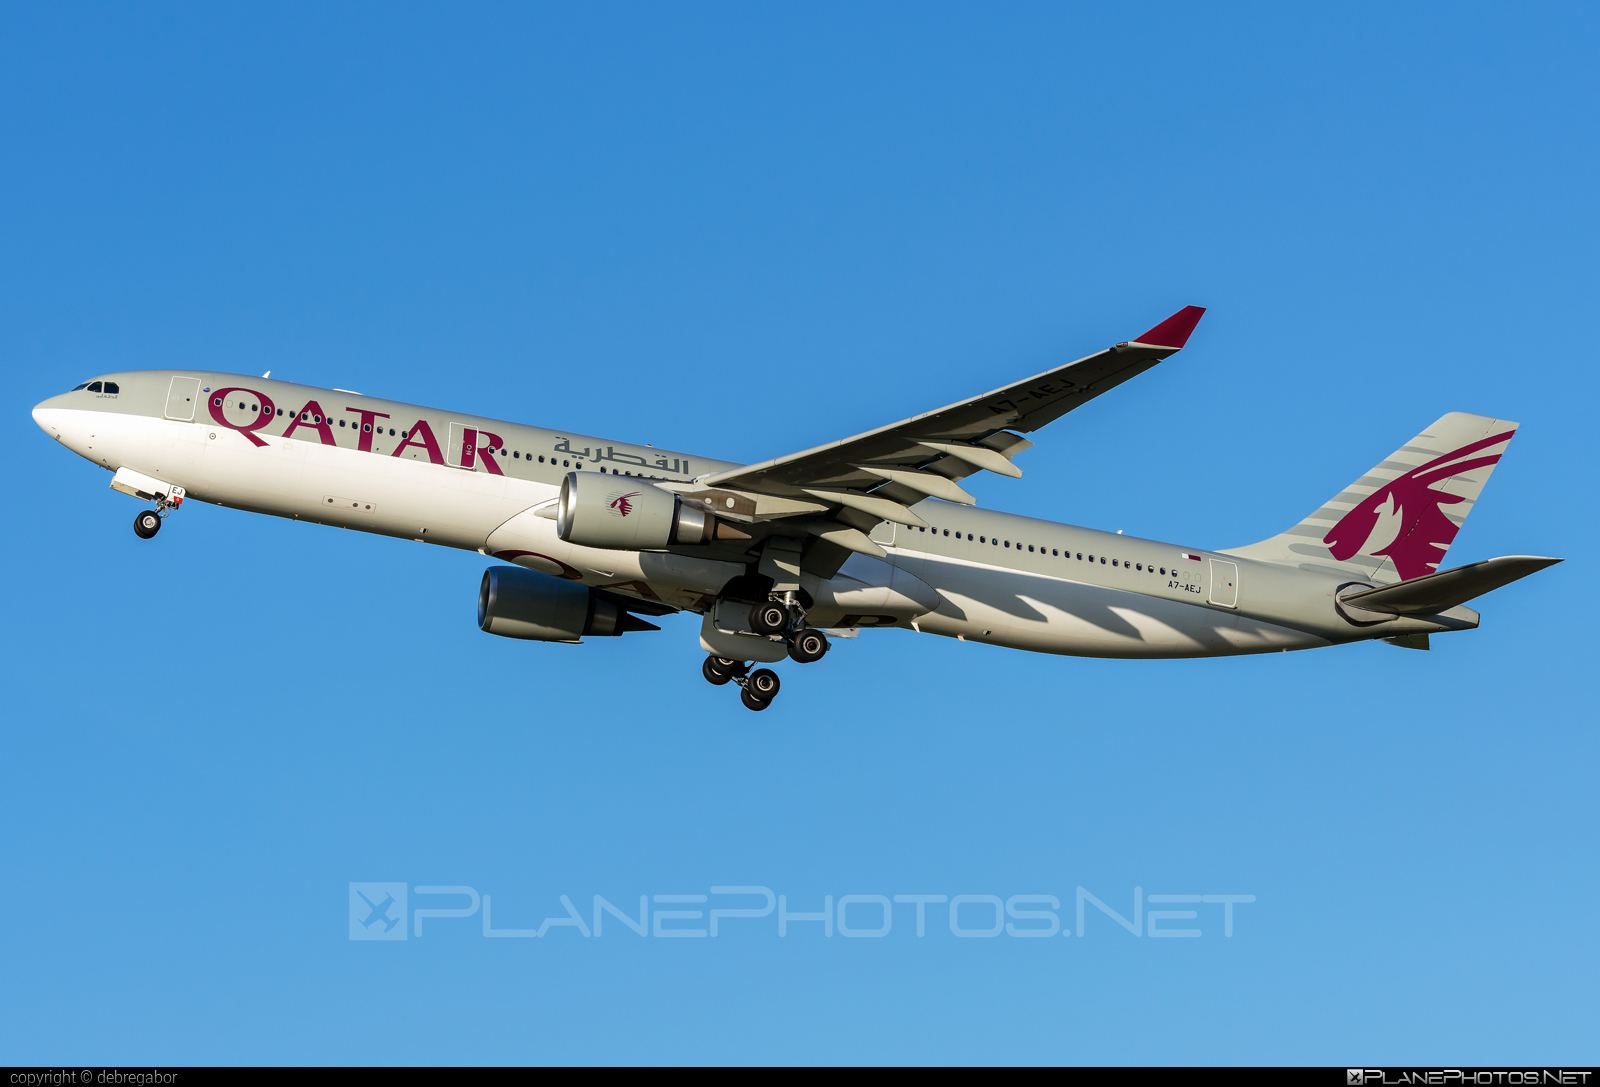 Airbus A330-302 - A7-AEJ operated by Qatar Airways #a330 #a330family #airbus #airbus330 #qatarairways